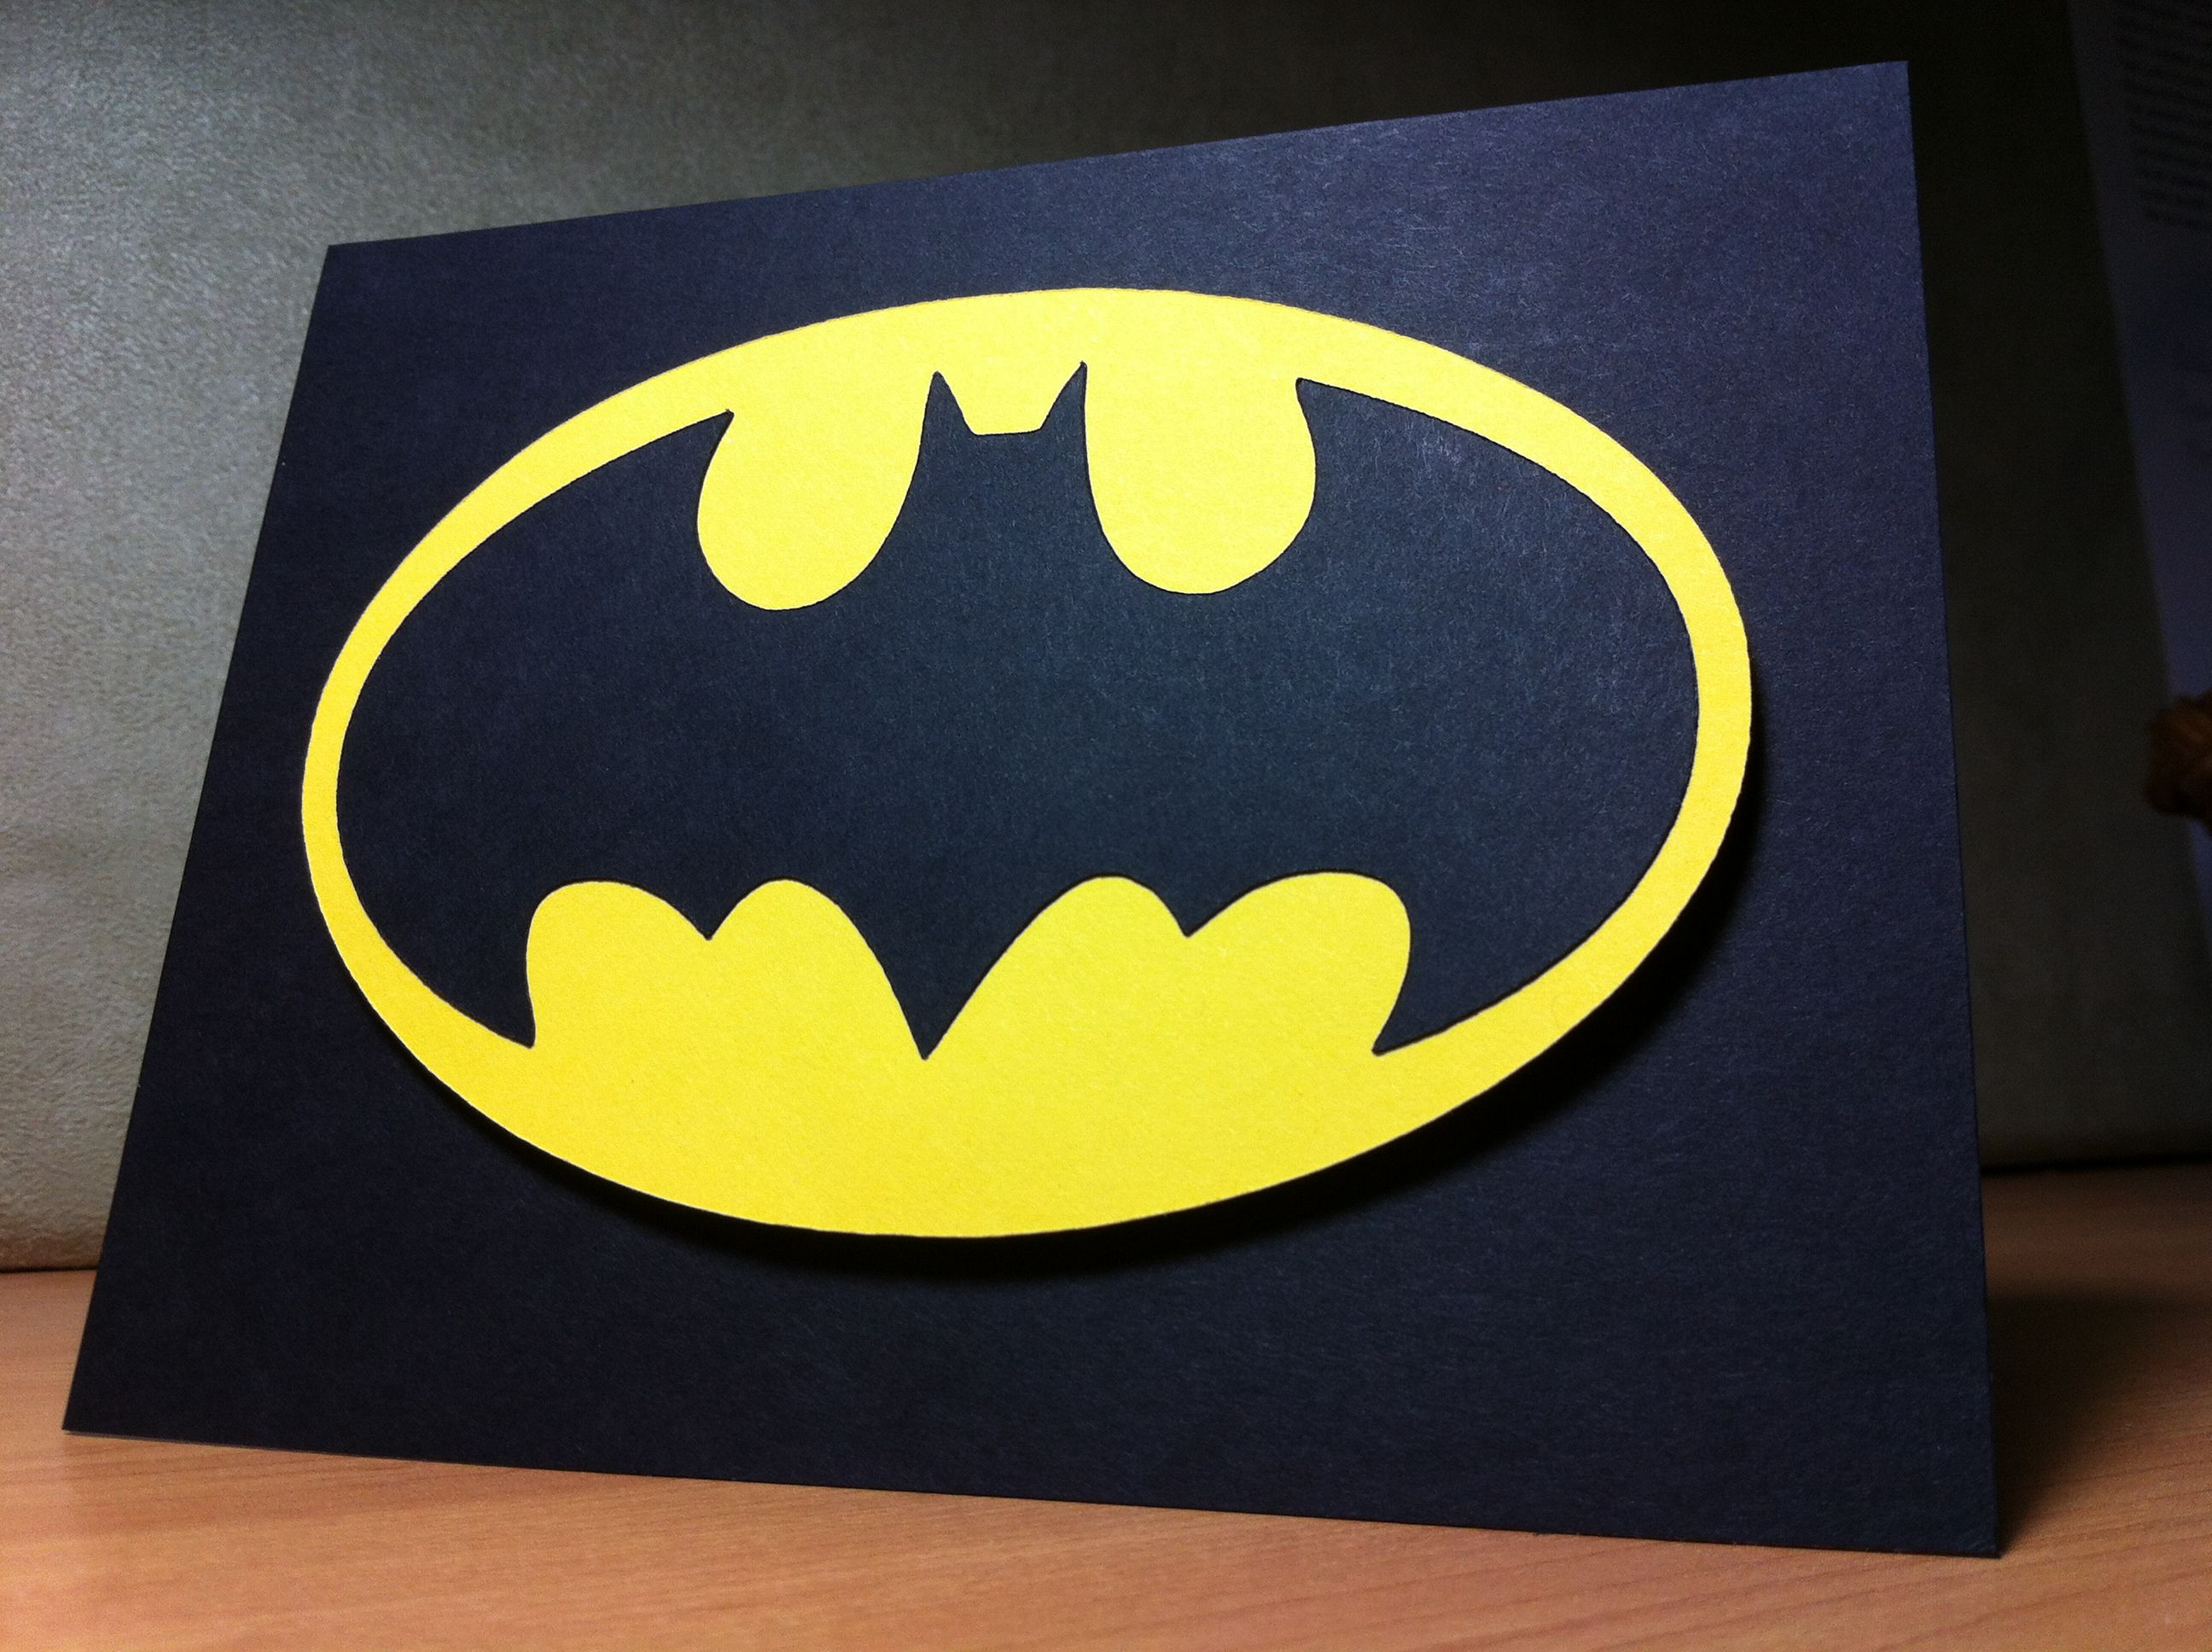 Batman Card My Version Made On Cricut Expression Using An Svg File Scal2 Software But Inspired By This Blog Kids Birthday Cards Kids Cards Creative Cards